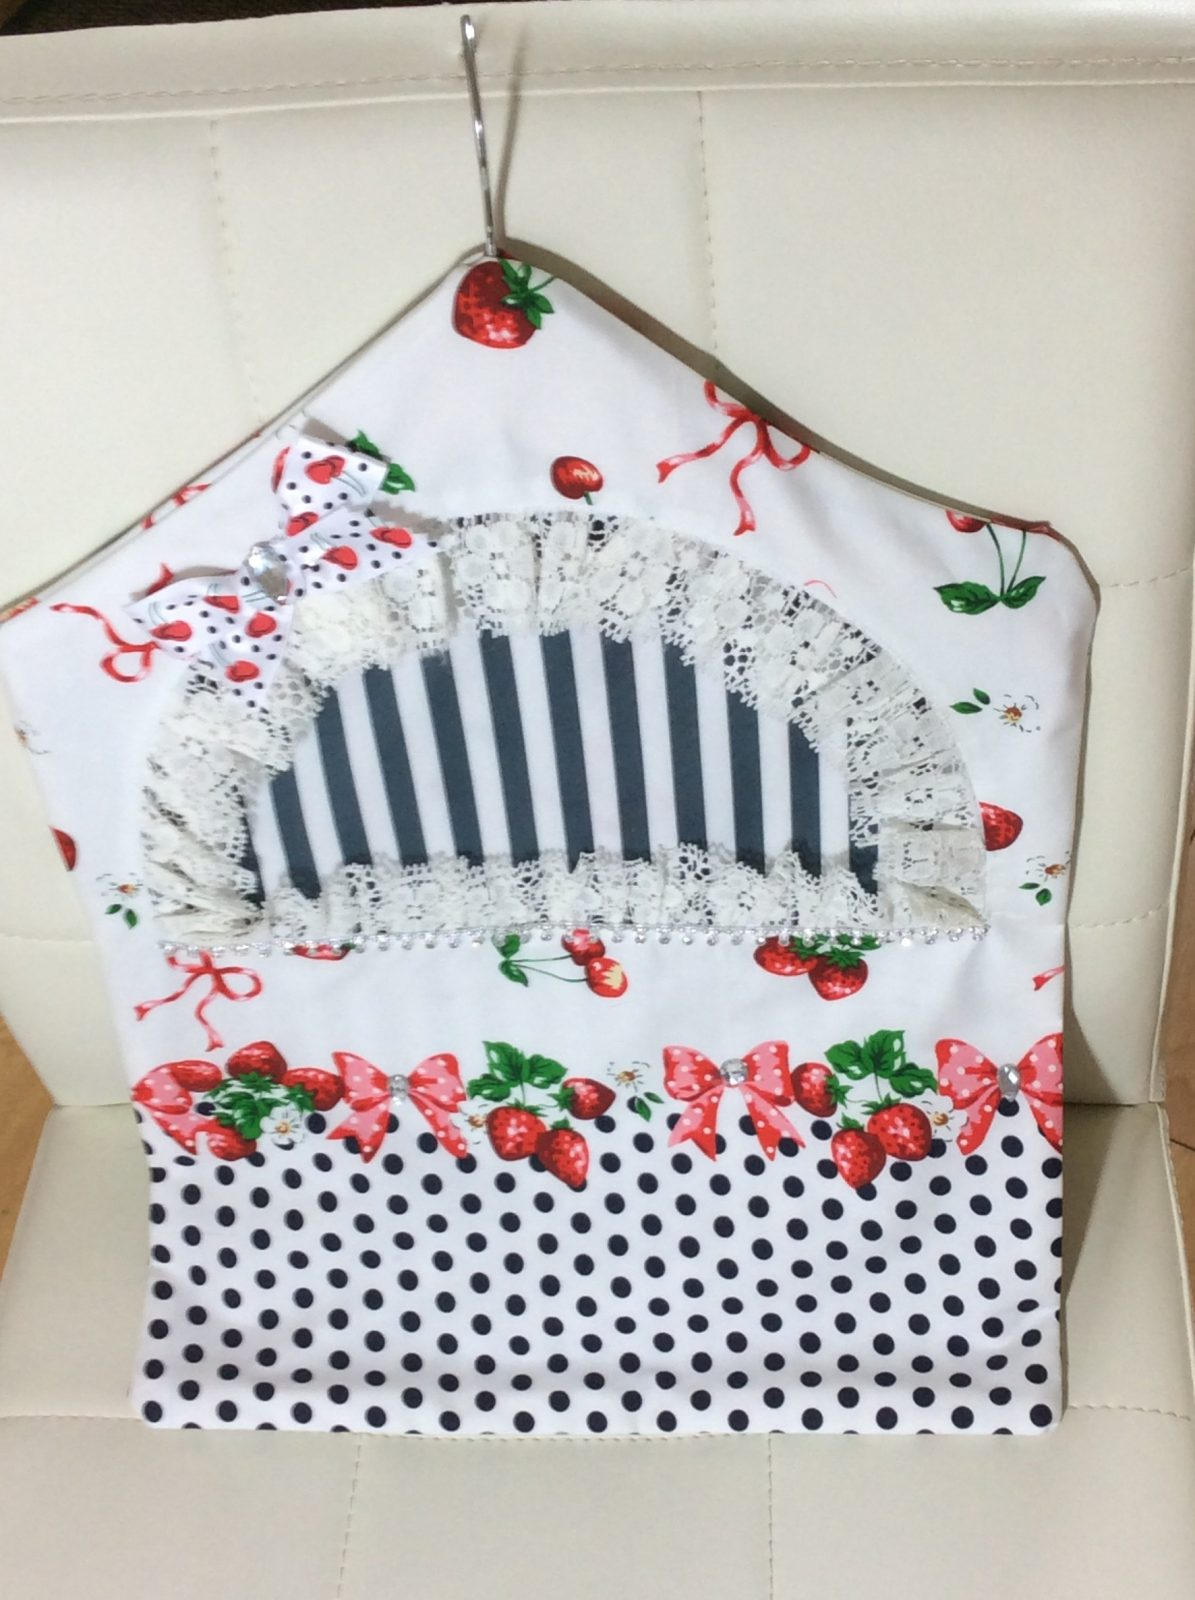 Strawberry Washing Peg Bag made with Printed Cotton Fabrics